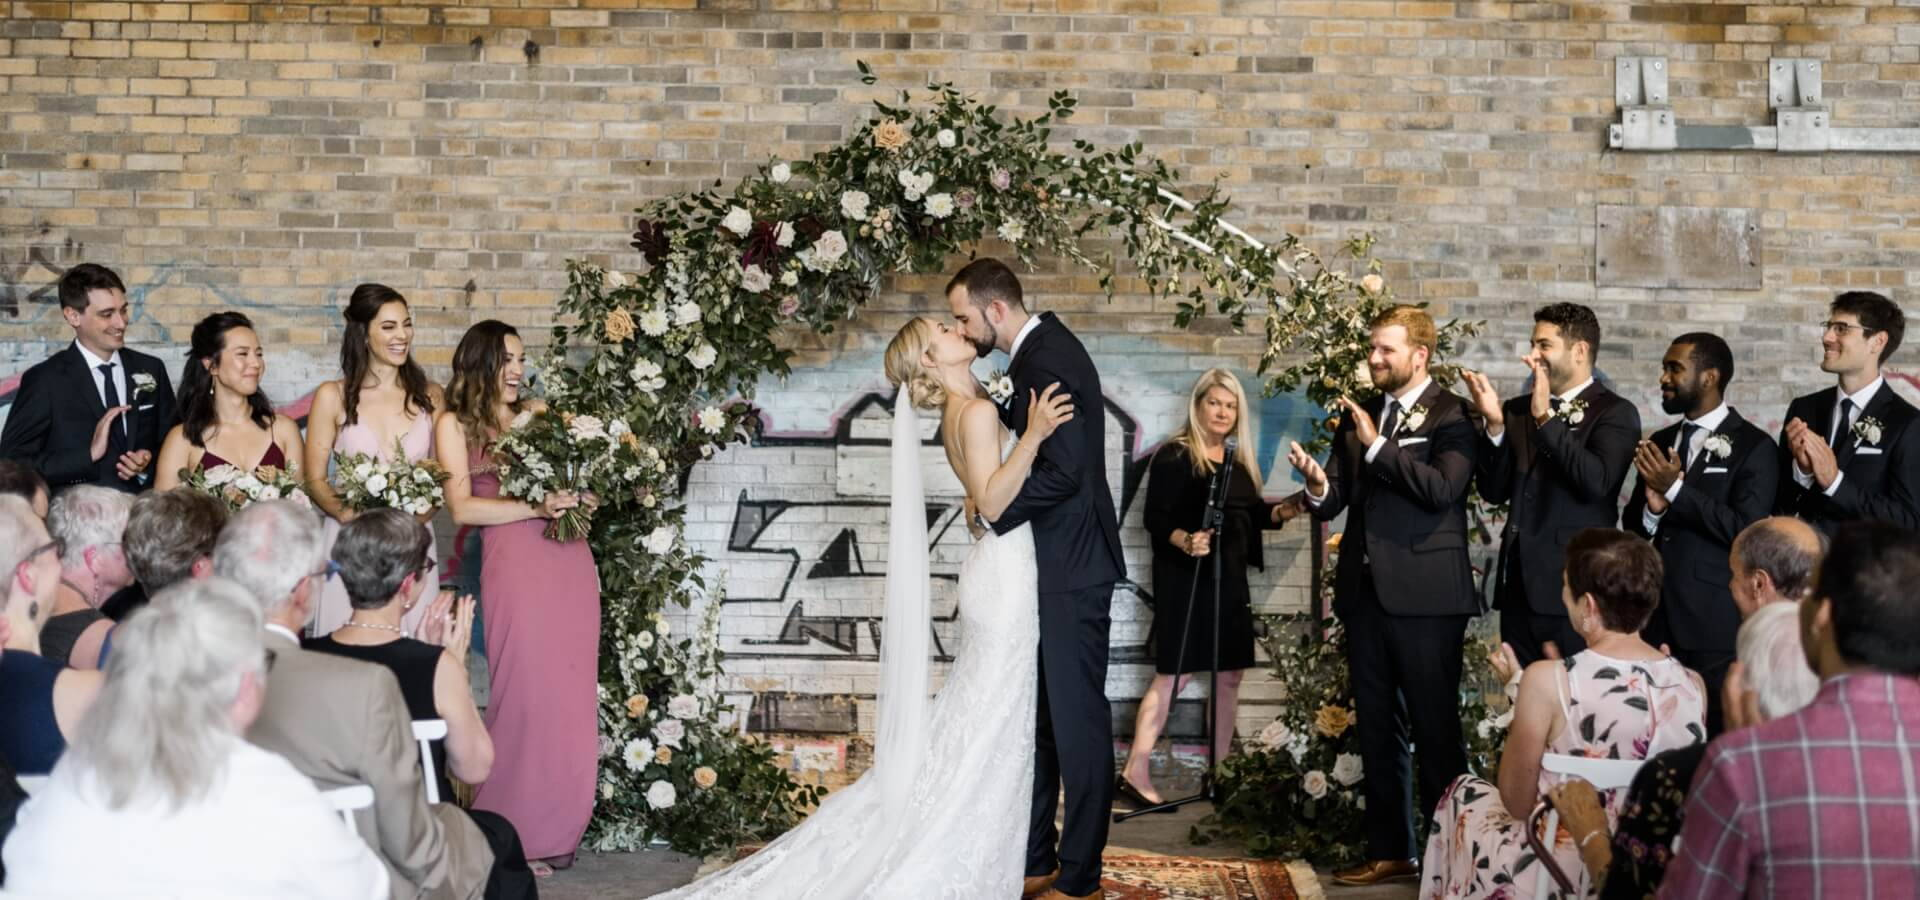 Hero image for Alexis and Aaron's Romantic Evergreen Brick Works Wedding